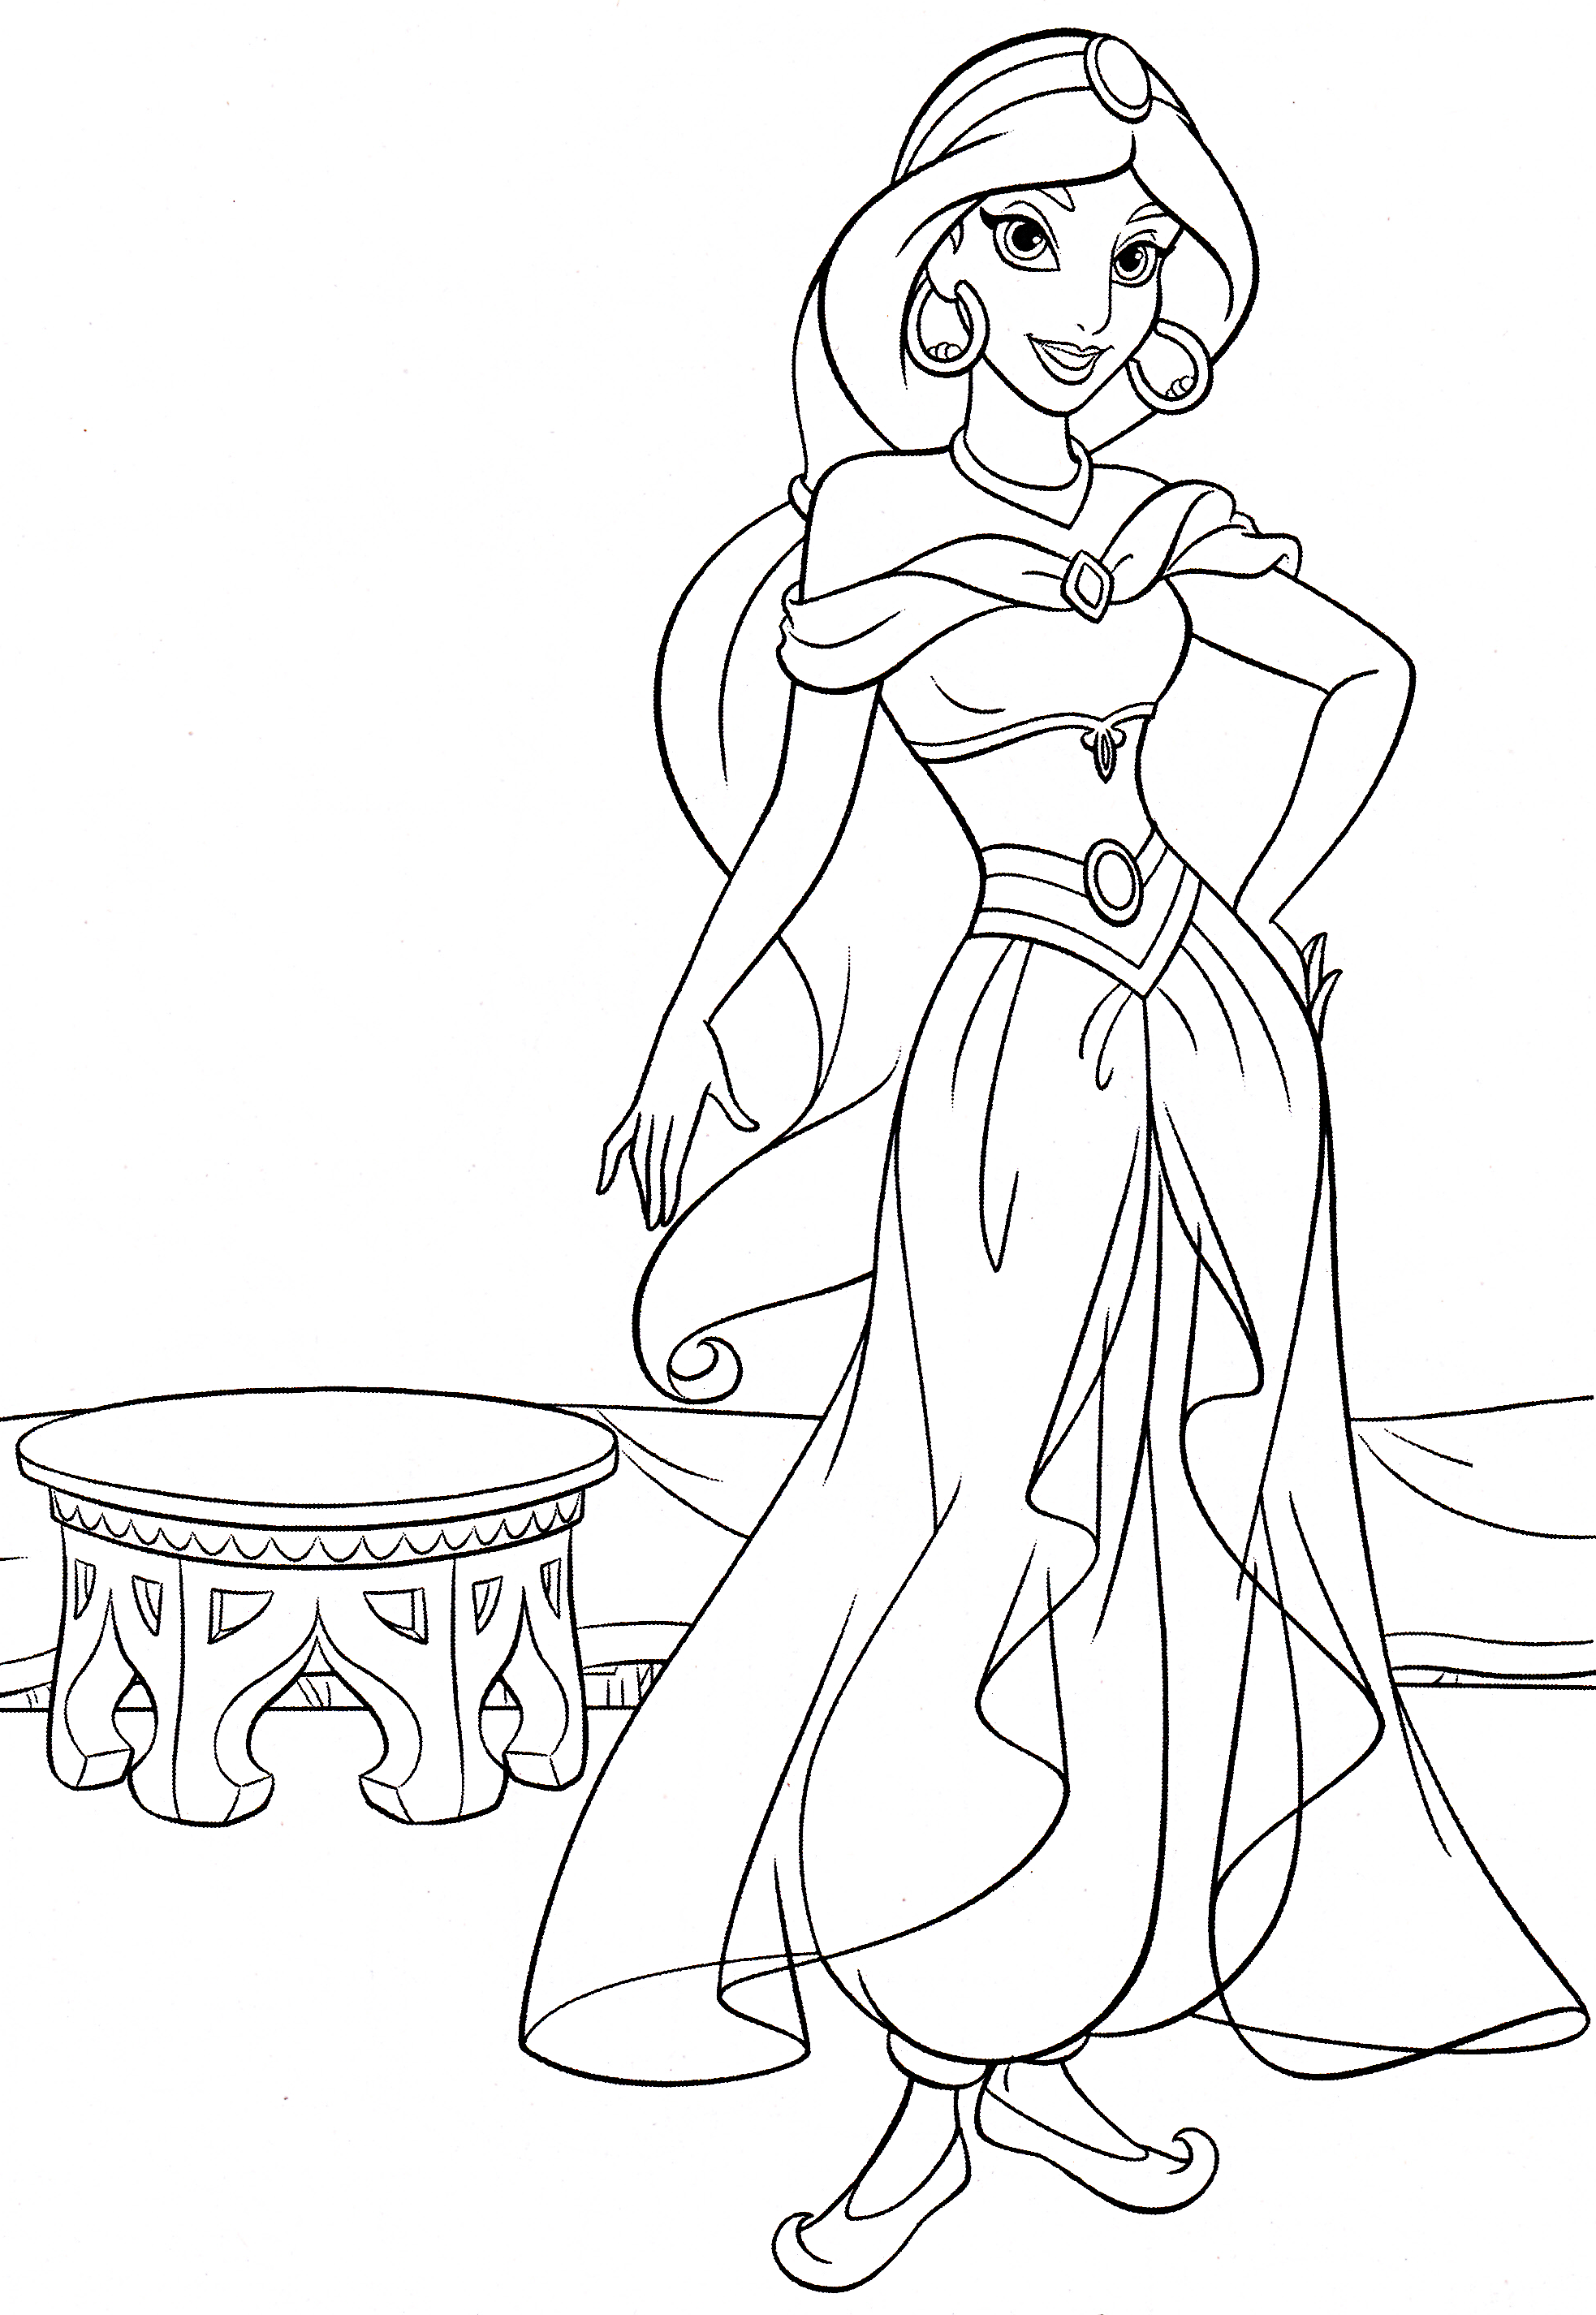 Walt Disney Characters Photo: Walt Disney Coloring Pages - Princess Jasmine  in 2020 | Disney princess coloring pages, Disney coloring pages, Disney  princess colors